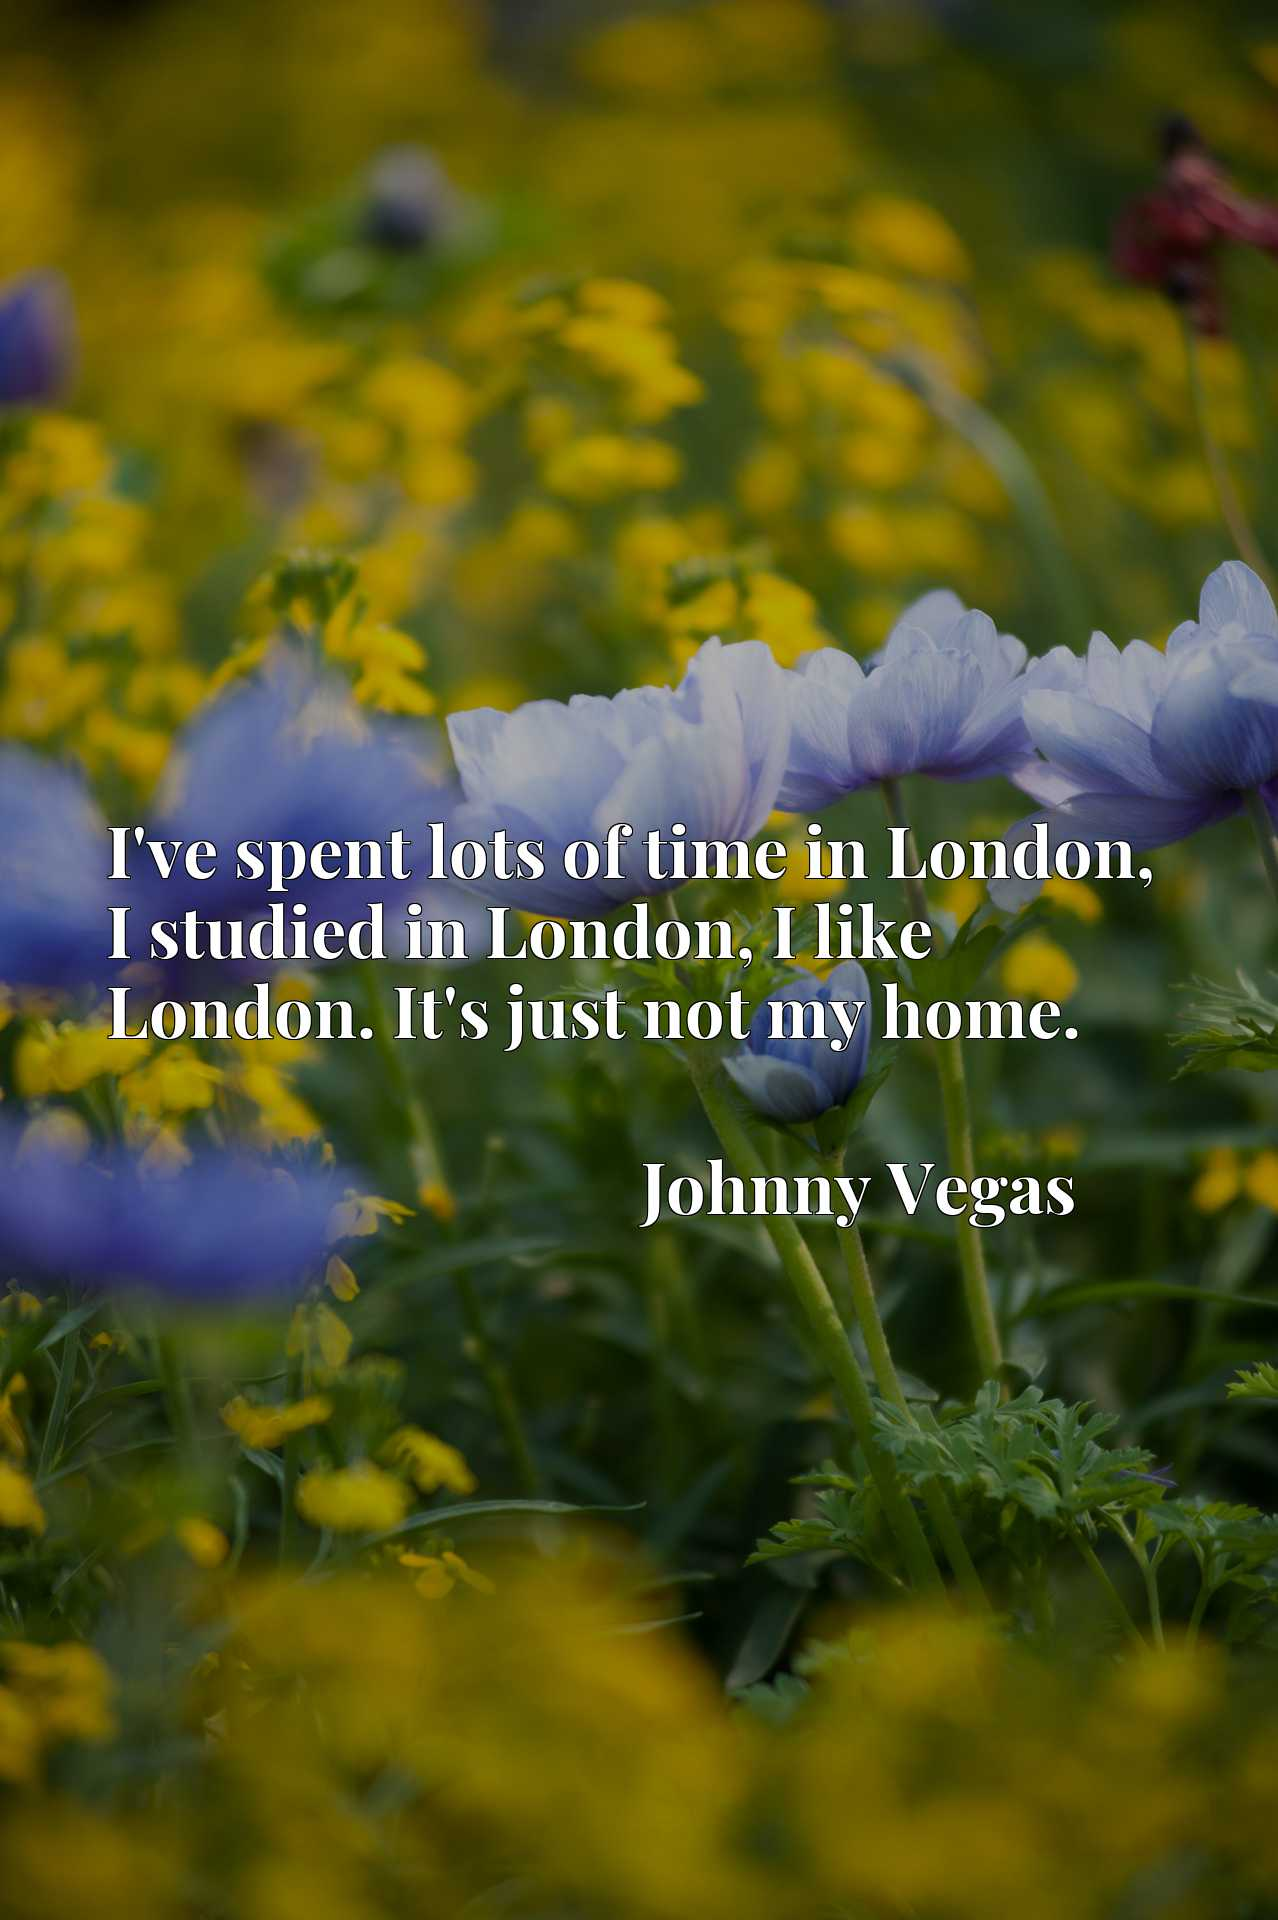 I've spent lots of time in London, I studied in London, I like London. It's just not my home.